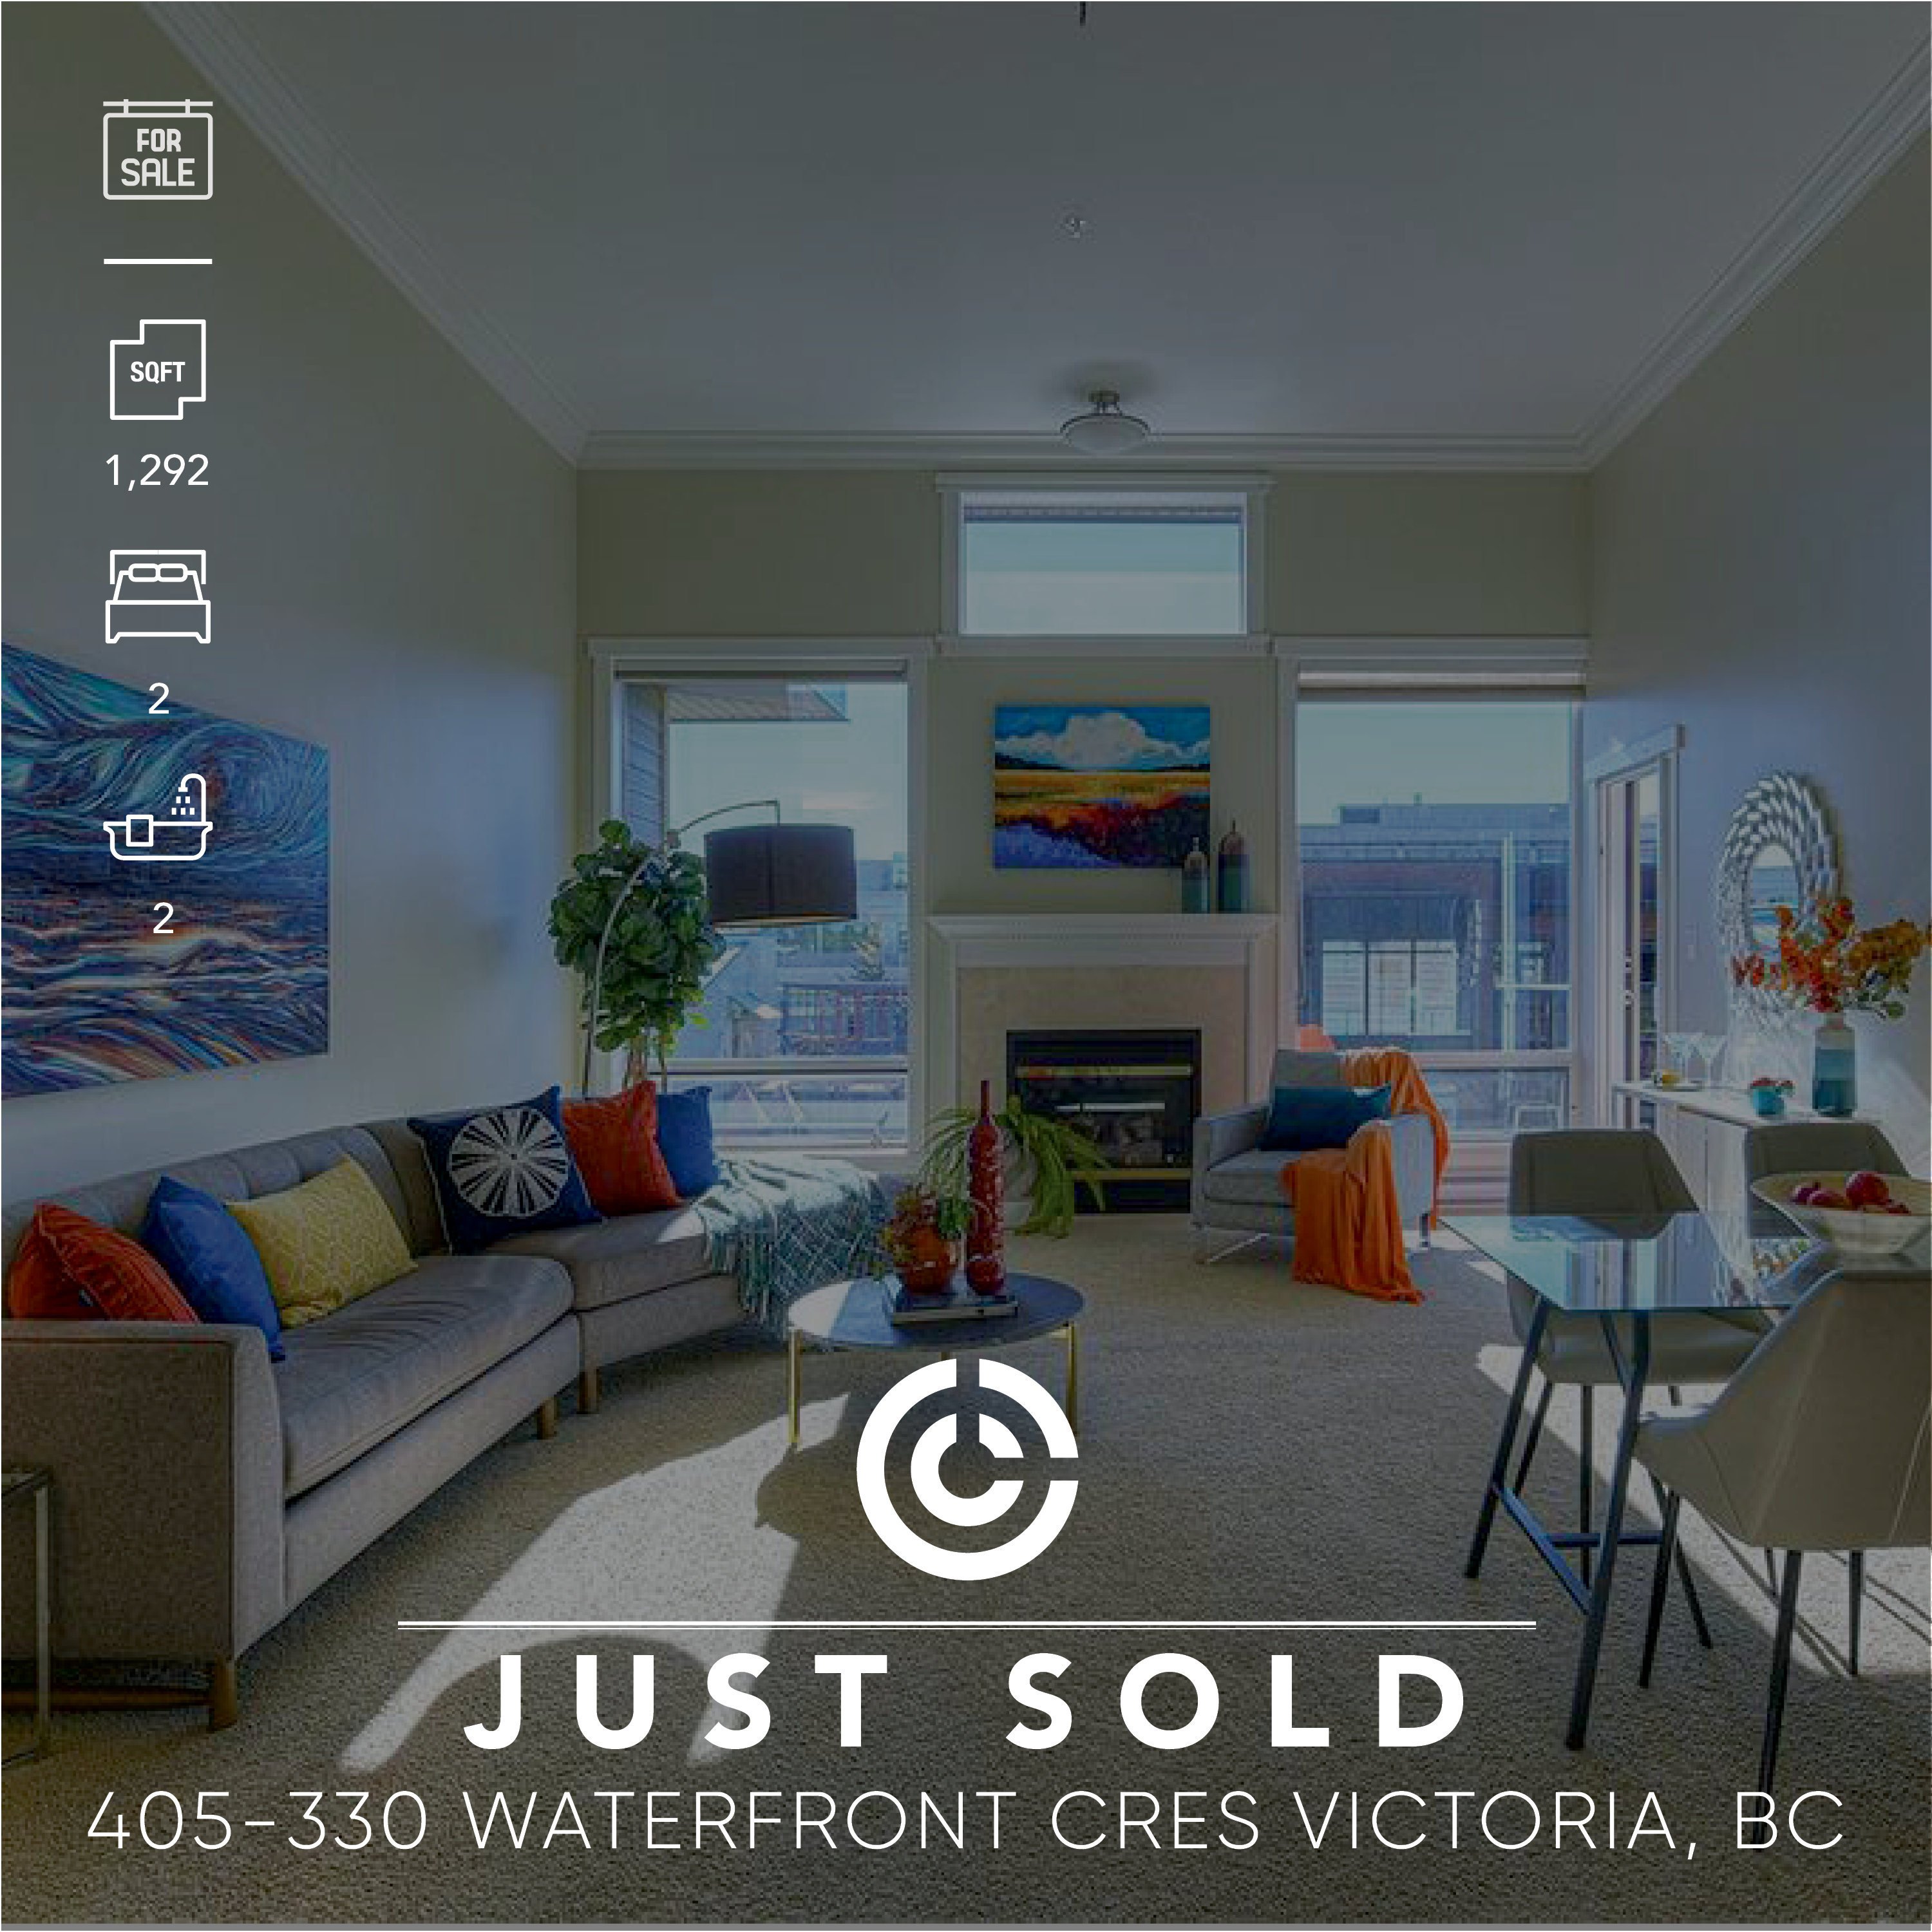 405-330 Waterfront Cres Victoria BC.png